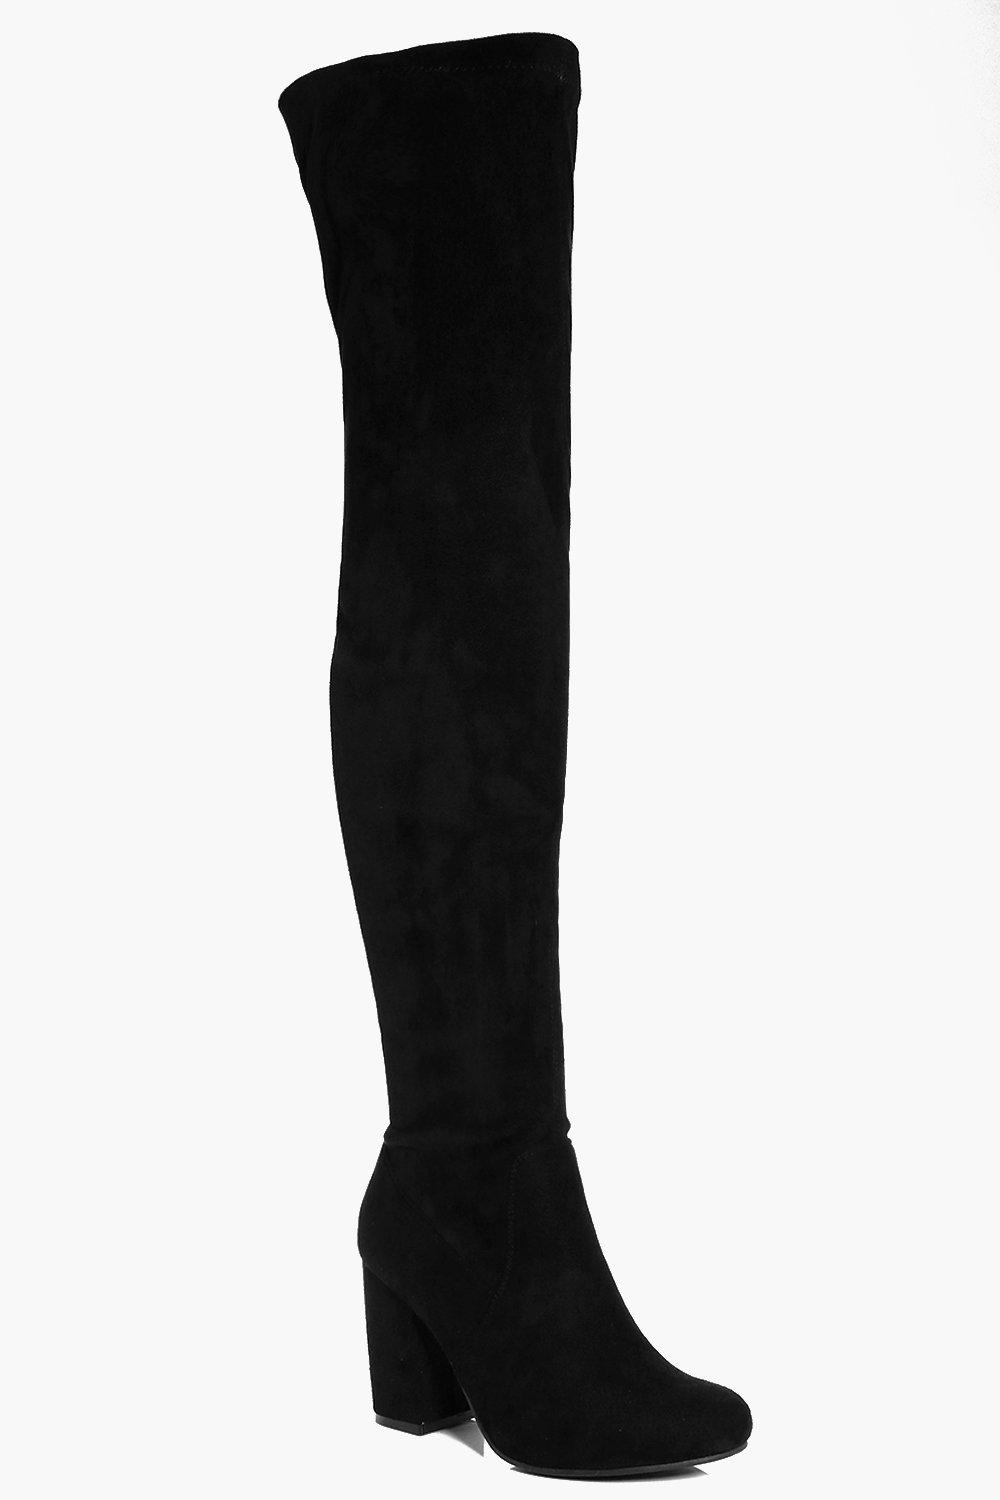 Lilly Block Heel Over The Knee Boot at boohoo.com